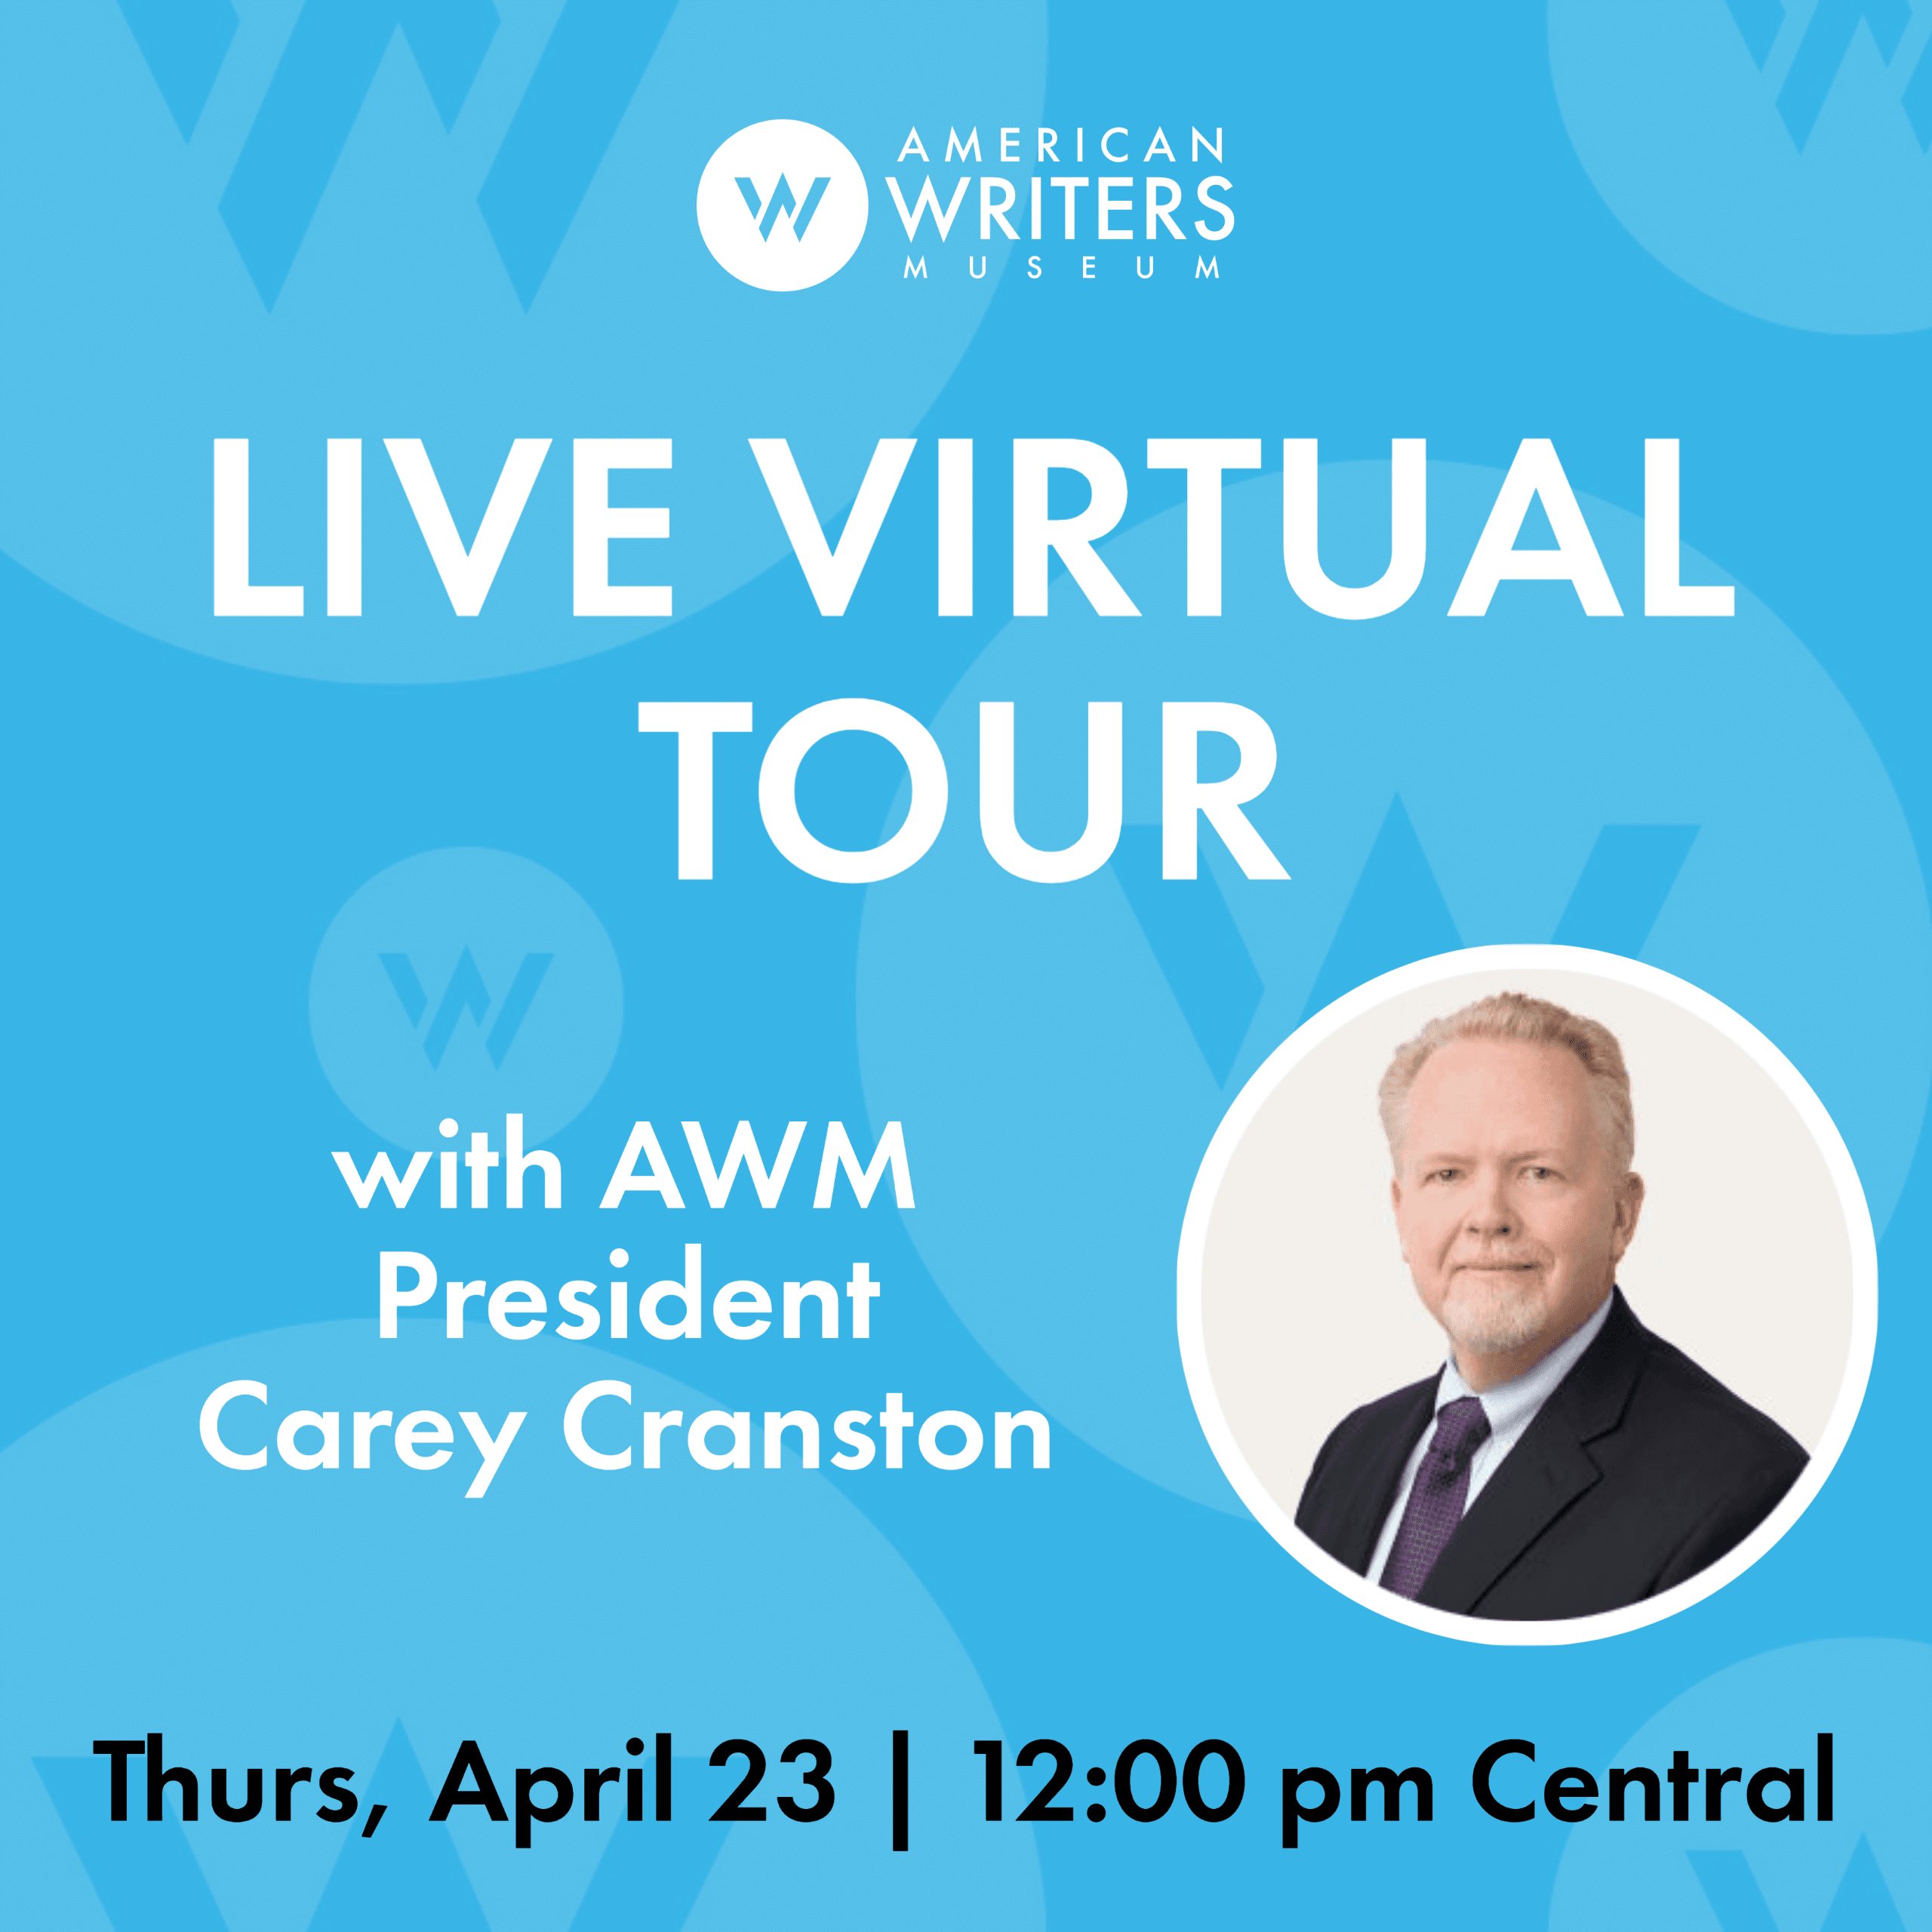 Join American Writers Museum president Carey Cranston on a virtual tour of the AWM